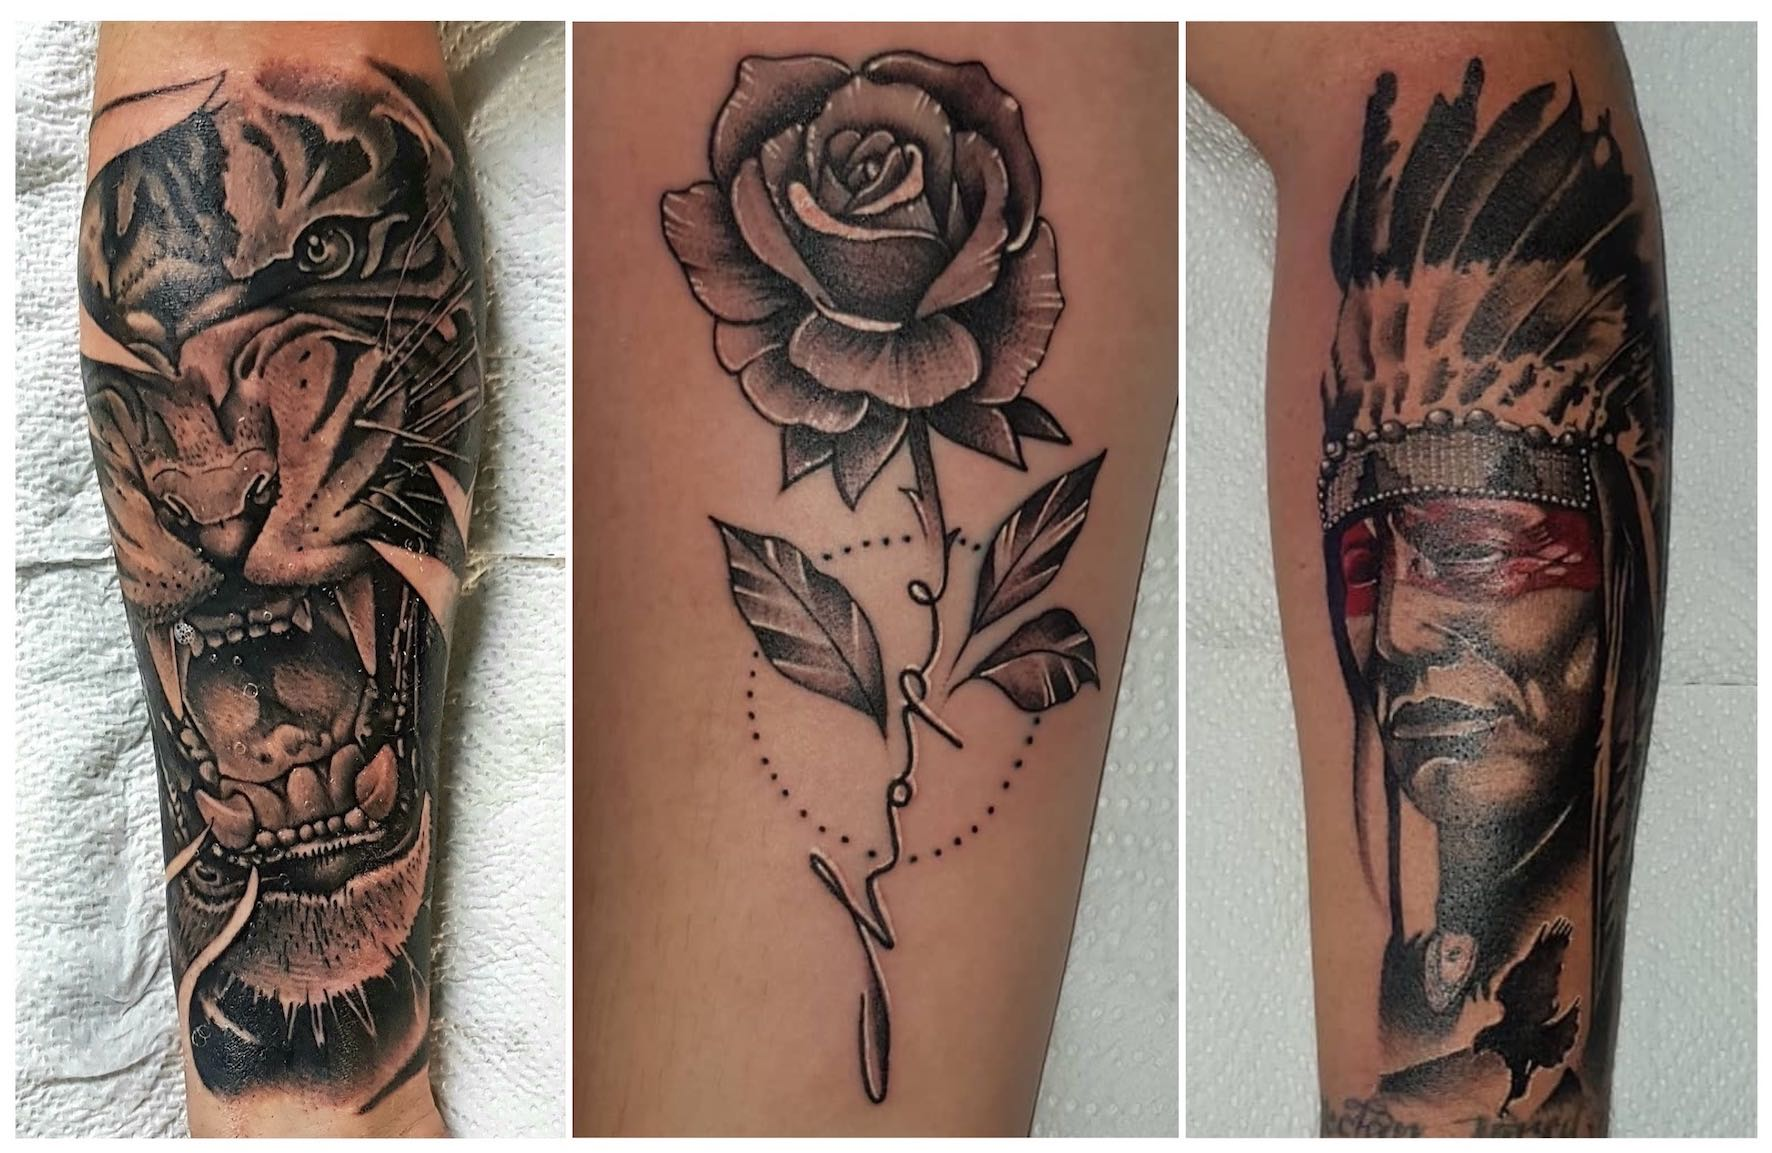 Tattoos done by Michael Palmer